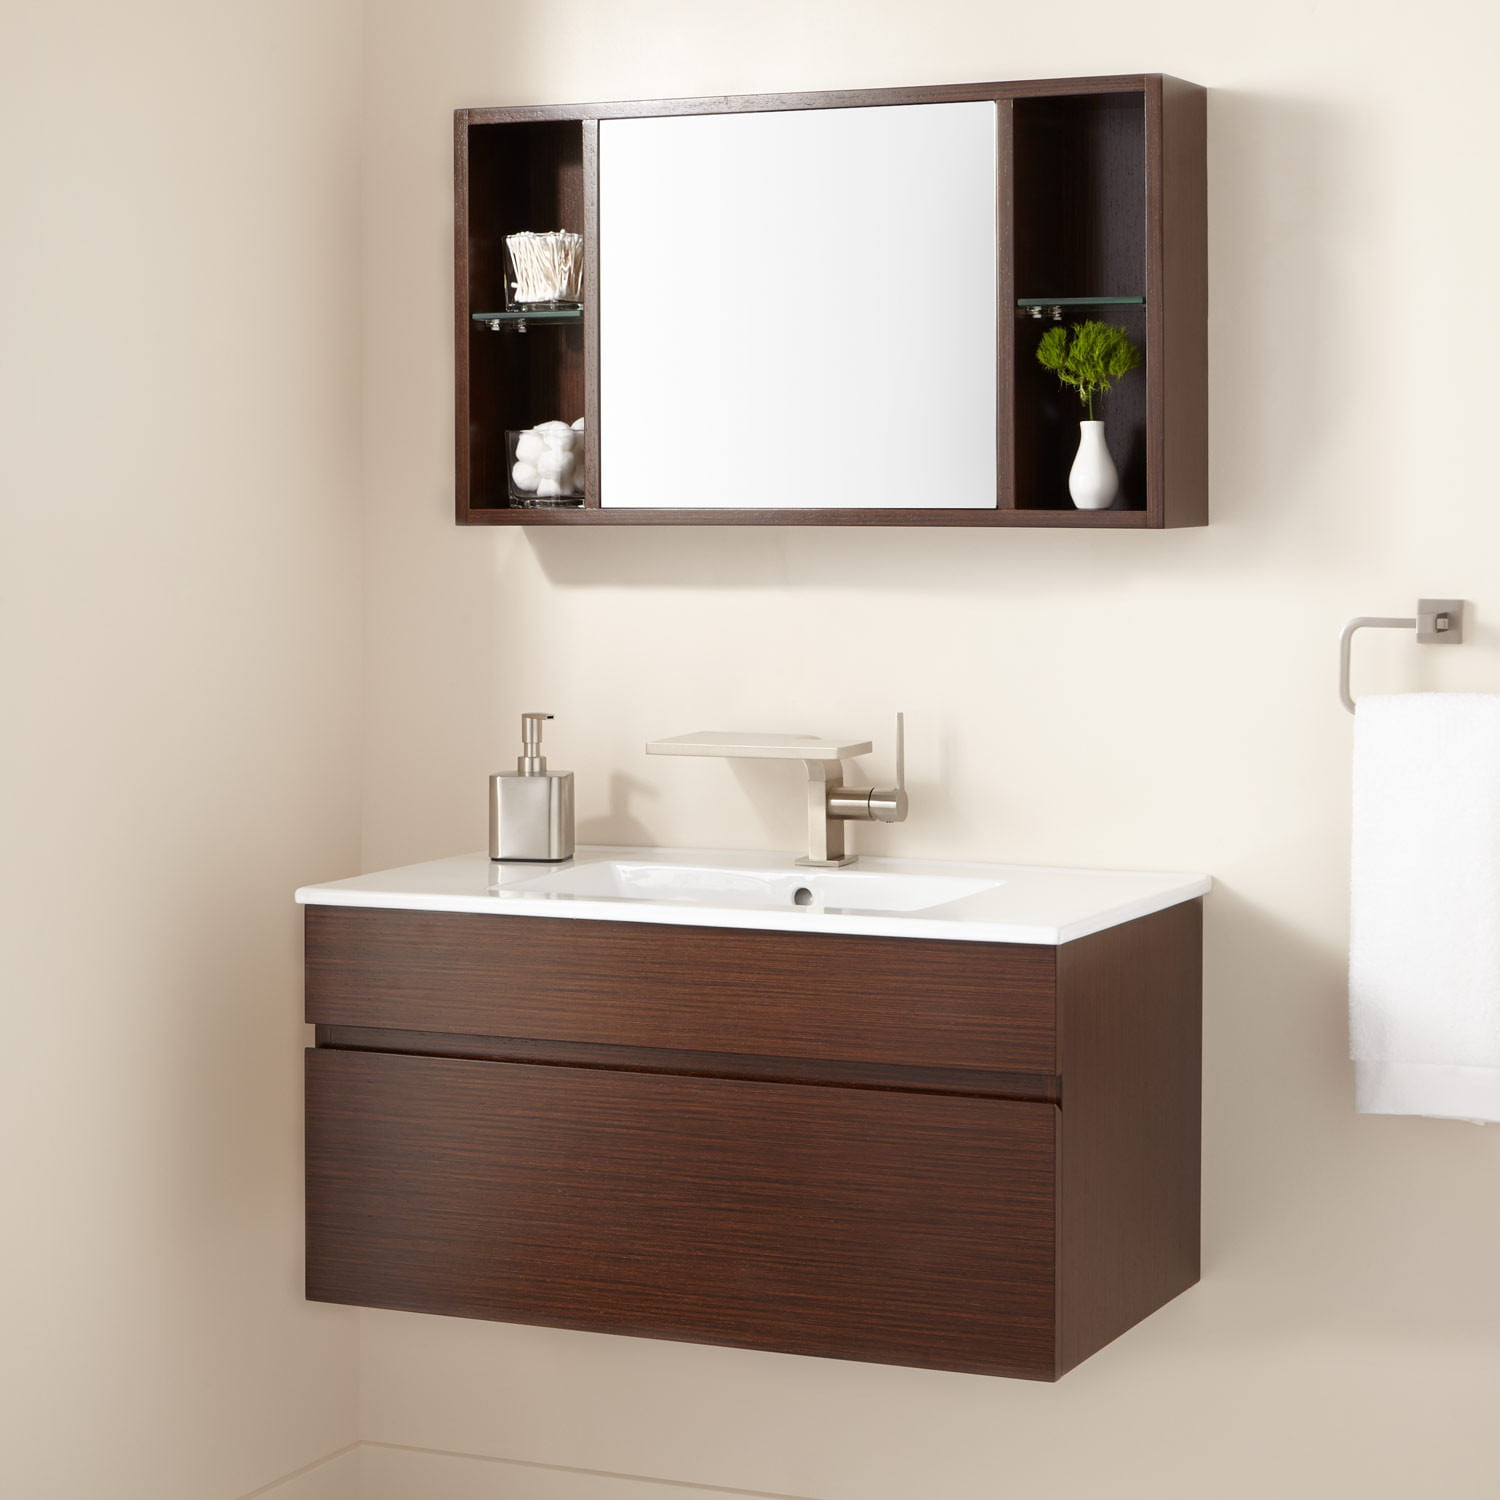 33 Dimitri Wall Mount Vanity And Mirrored Storage pertaining to measurements 1500 X 1500